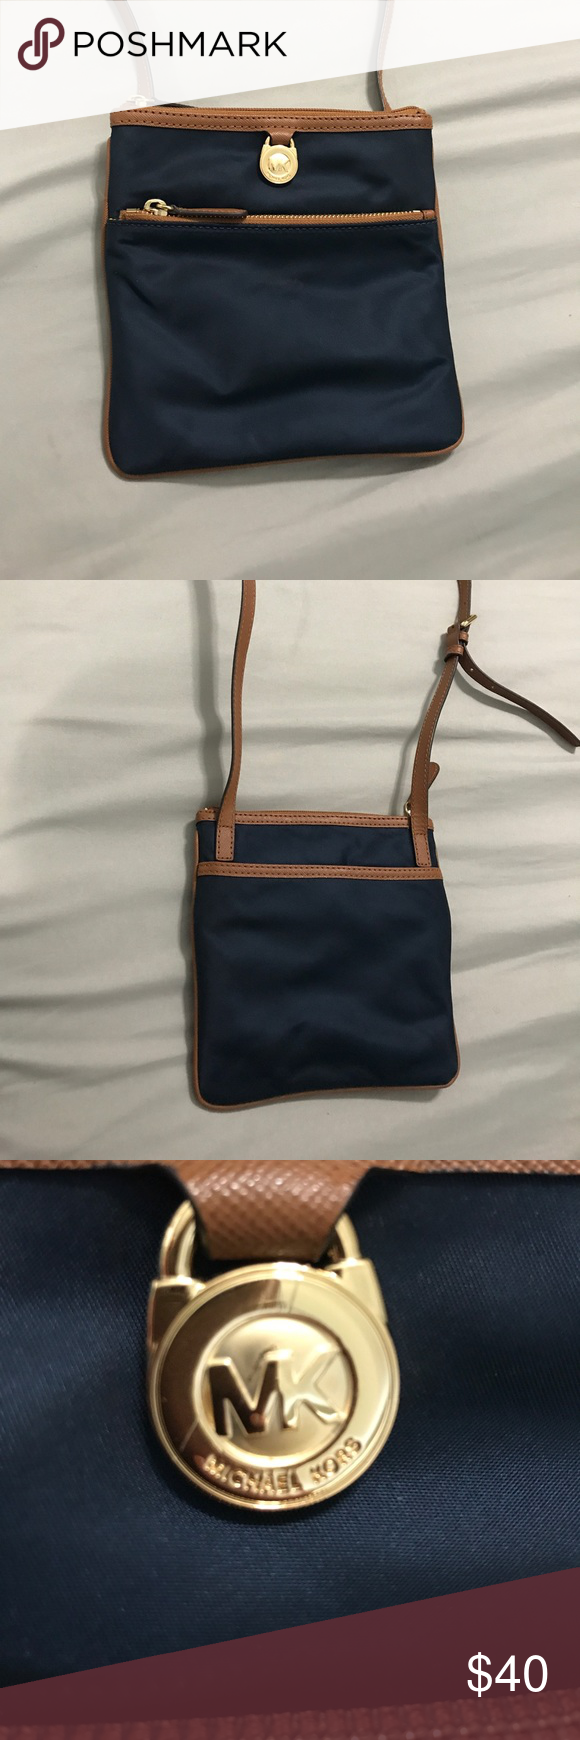 Michael Kors crossbody Michael Kors navy blue crossbody purse. Barely used. No inside stains Michael Kors Bags Crossbody Bags